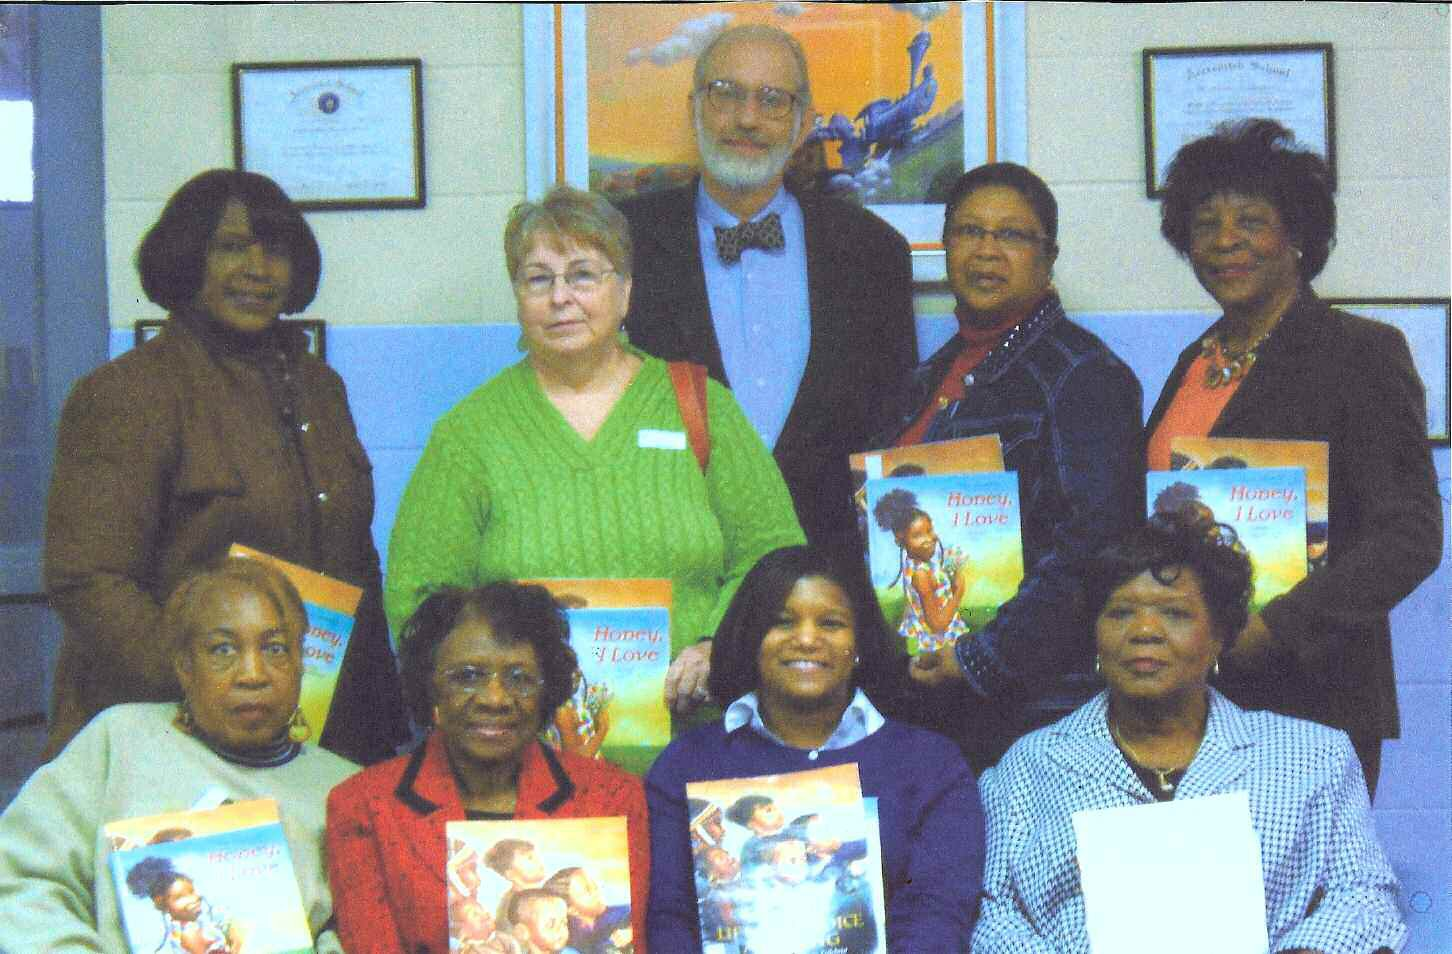 Retirees who assembled at East Broad to read to students included: first row: Dr. Rebecca Dawson, Mrs. Jeanette Scott, Dr. Charlene Ford, Mrs. Kathy Jenks. second row: Mrs. Rosa Jackson, Mrs. Harriett Roberts, Mr. Hugh Golson, and Mrs. Jere Williams. Mrs. Barbara Magwood, and Mrs. Virgiina Edwards not shown.